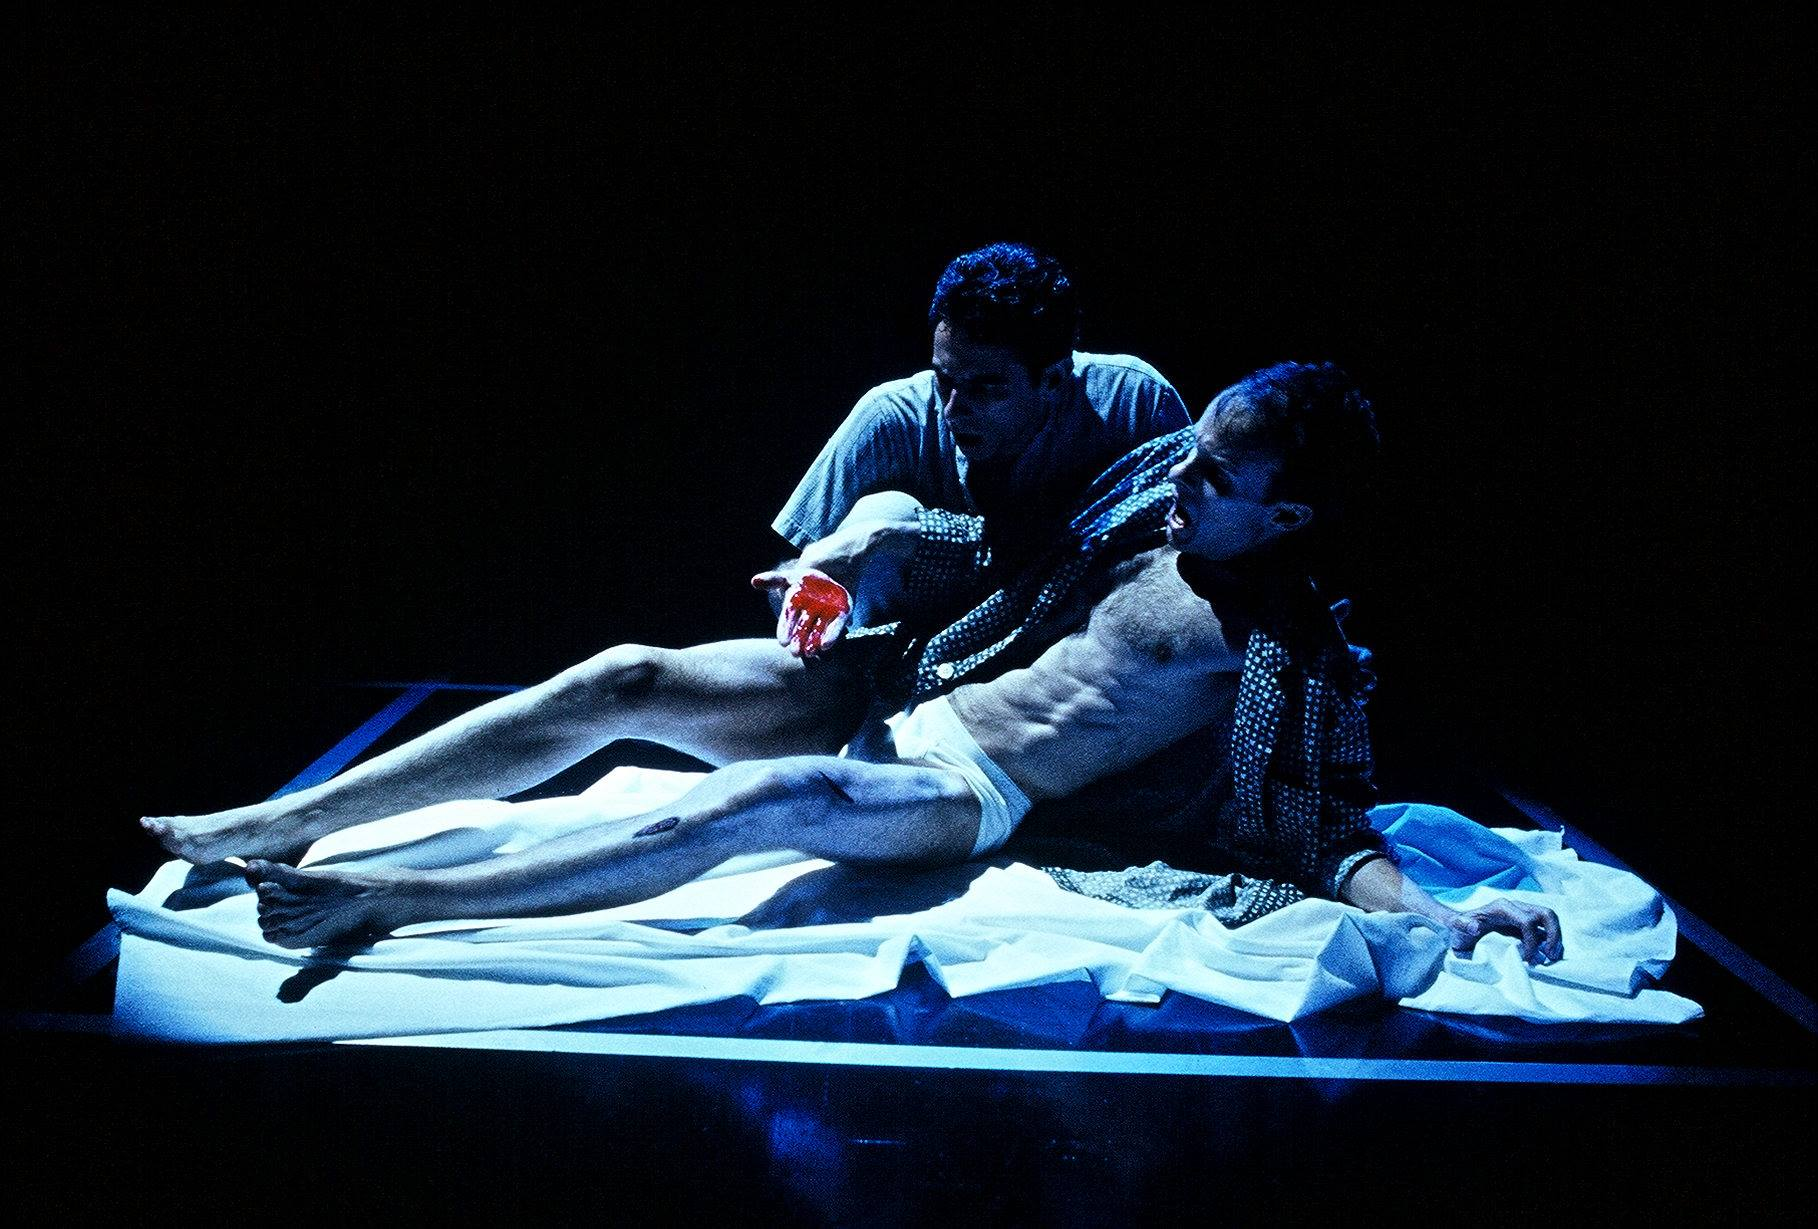 Actors Theatre. 2002. Angels in America - Millennium Approaches and Perestroika. Oliver Wadsworth, Christopher William. 000